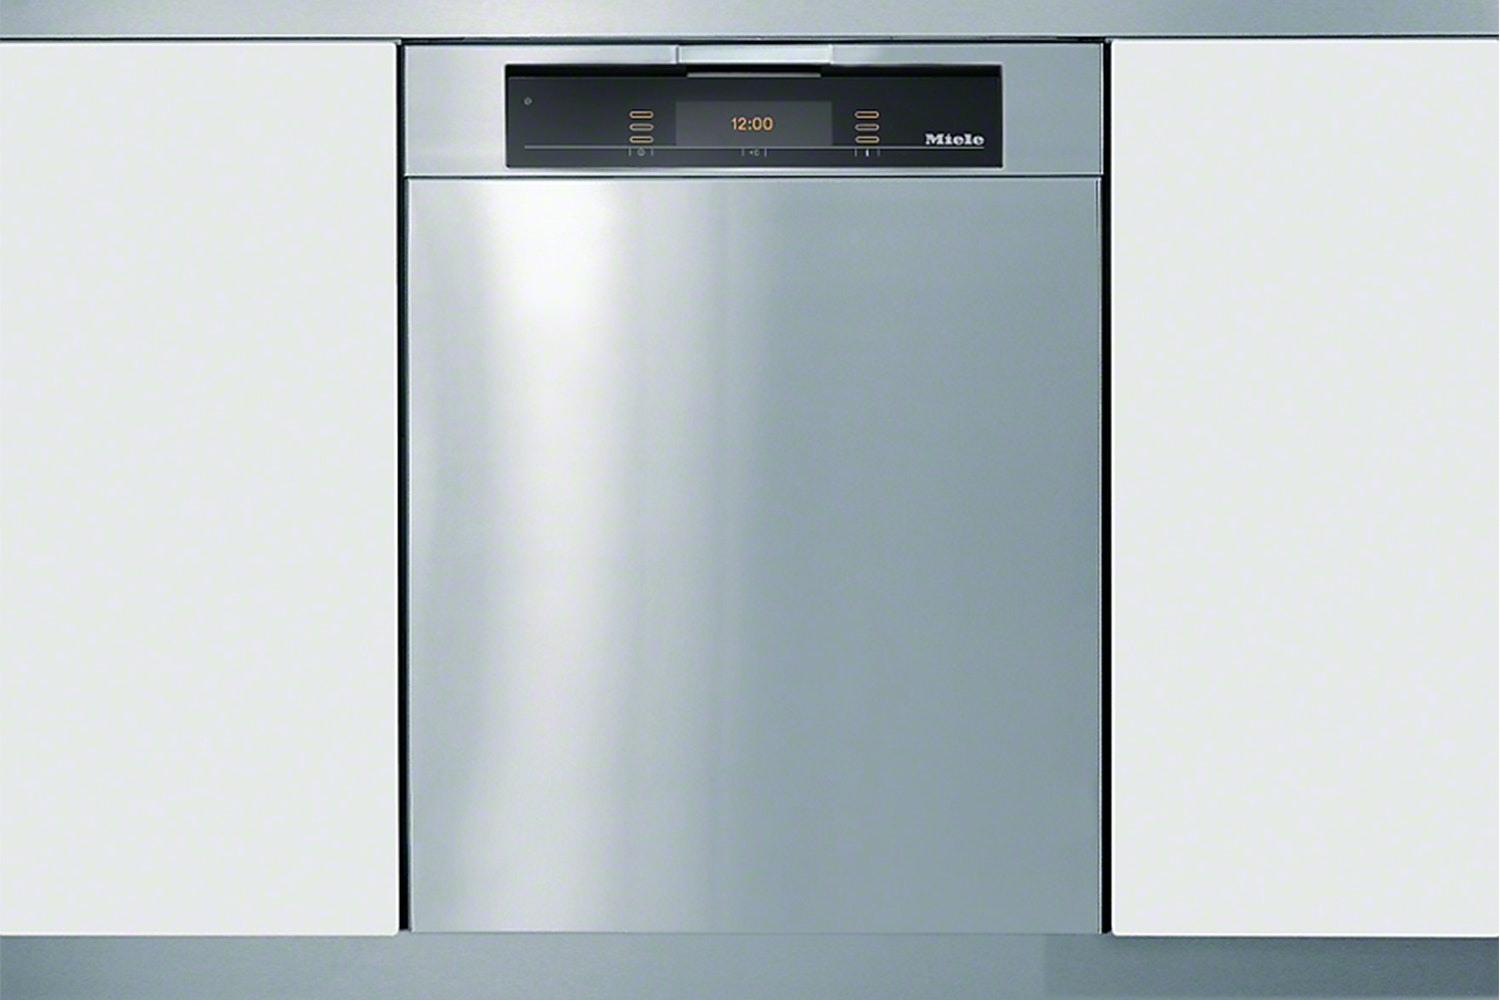 Miele GFV 60/60-1  Int. front panel: W x H, 24 x 24 in   with Clean Touch Steel finish for integrated dishwashers